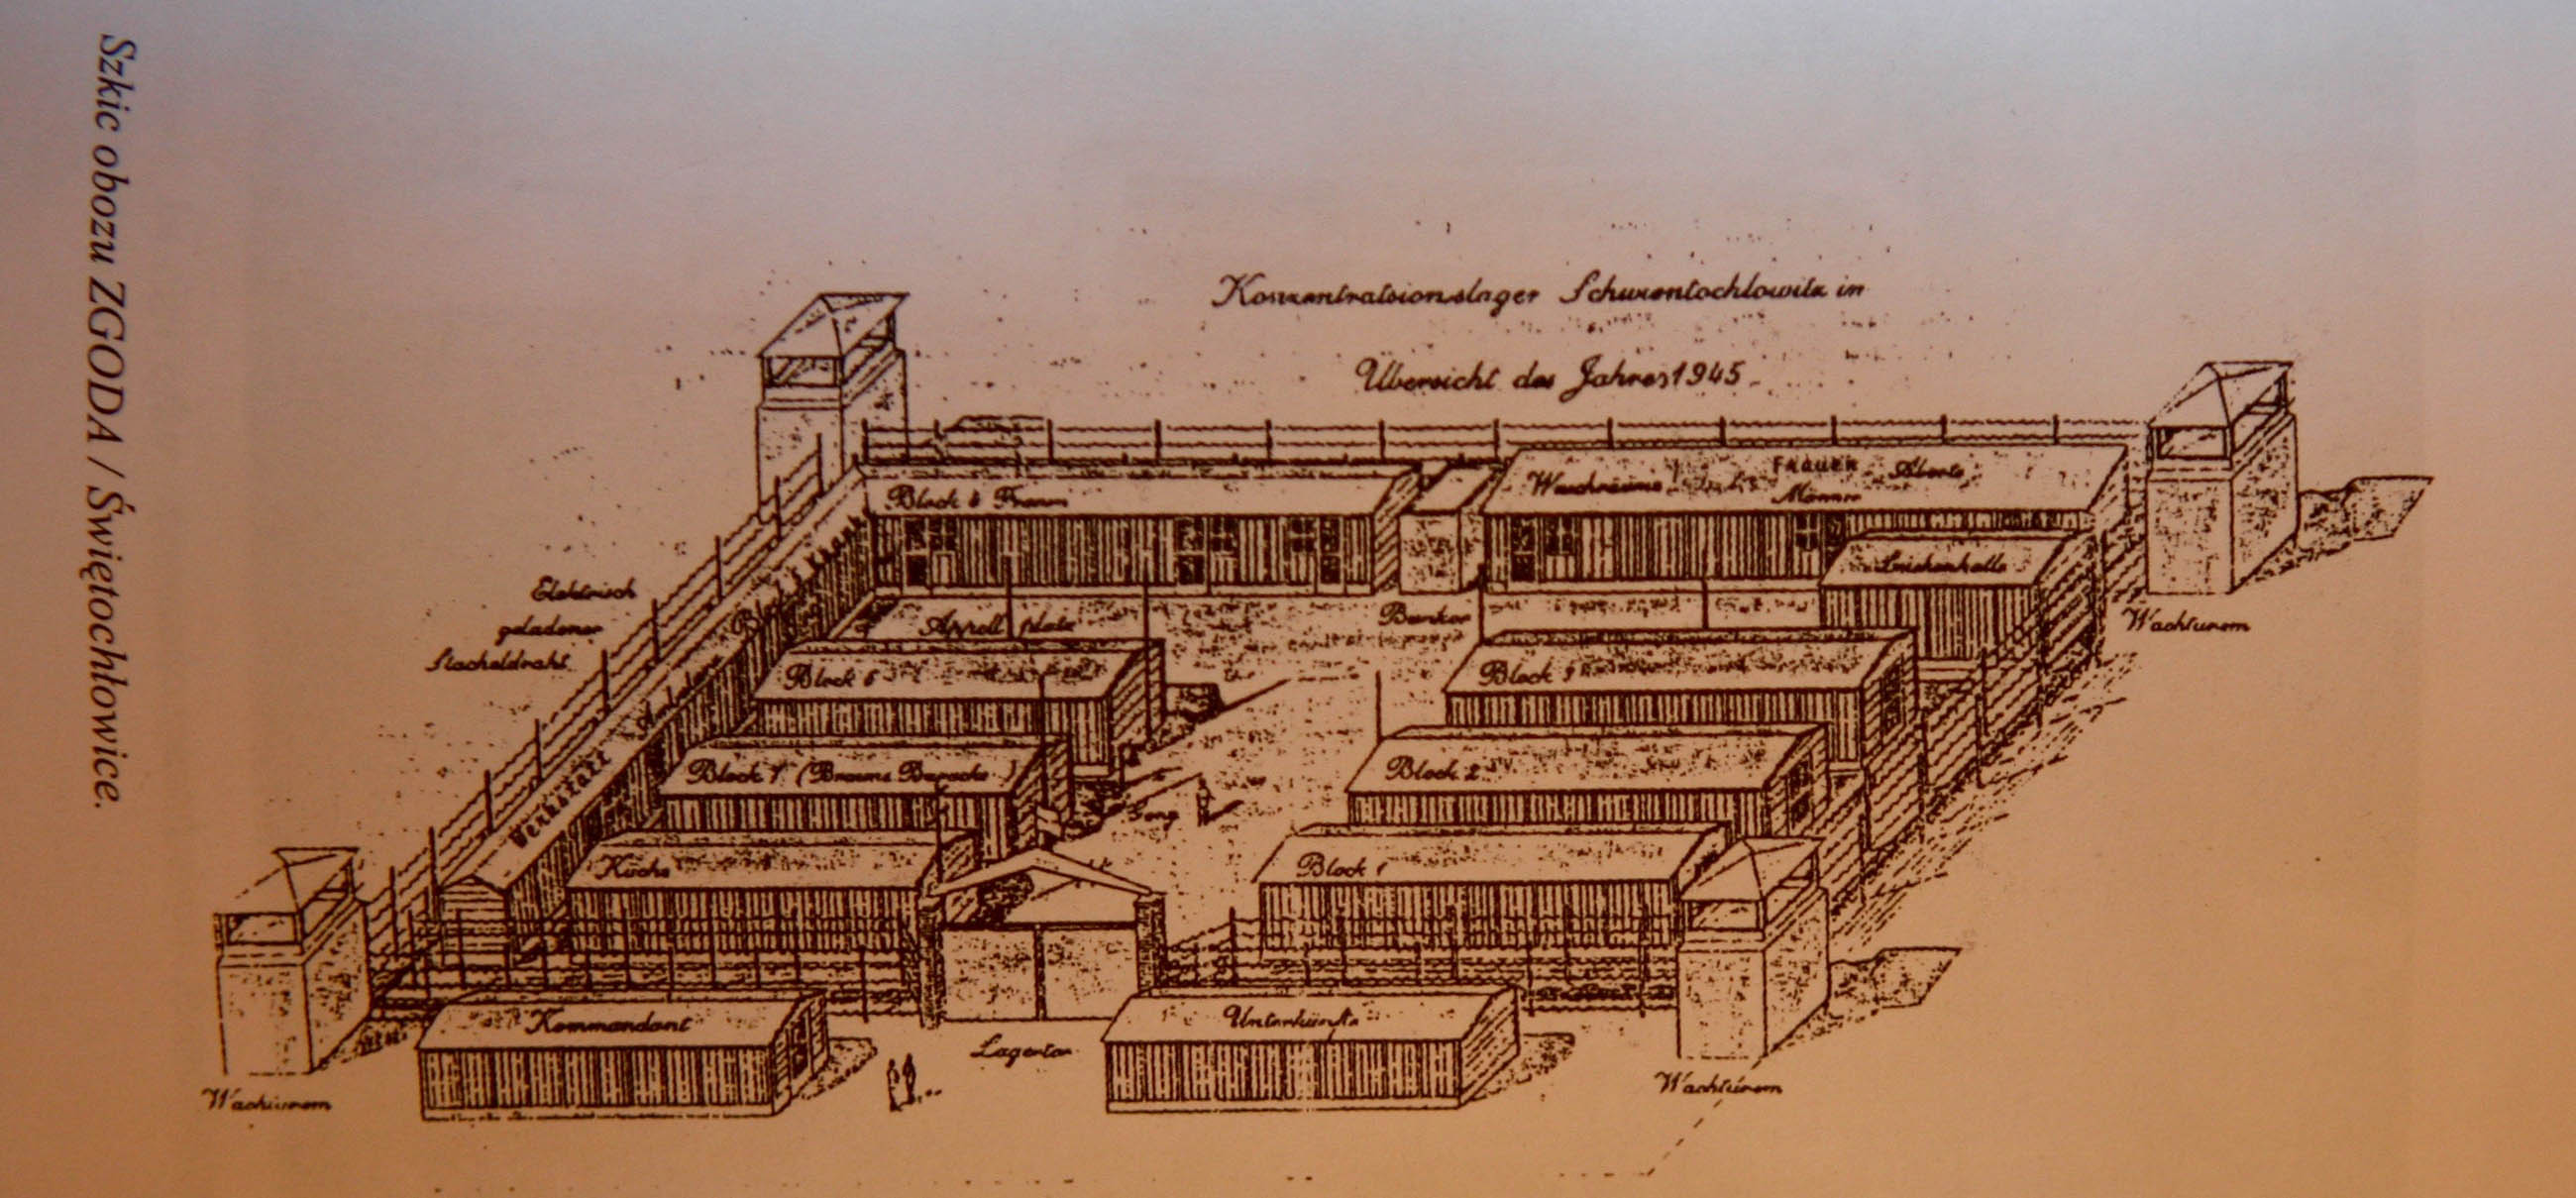 Drawing of the sub camp Eintrachthütte. Zgoda Miejsce Grozy. 4678